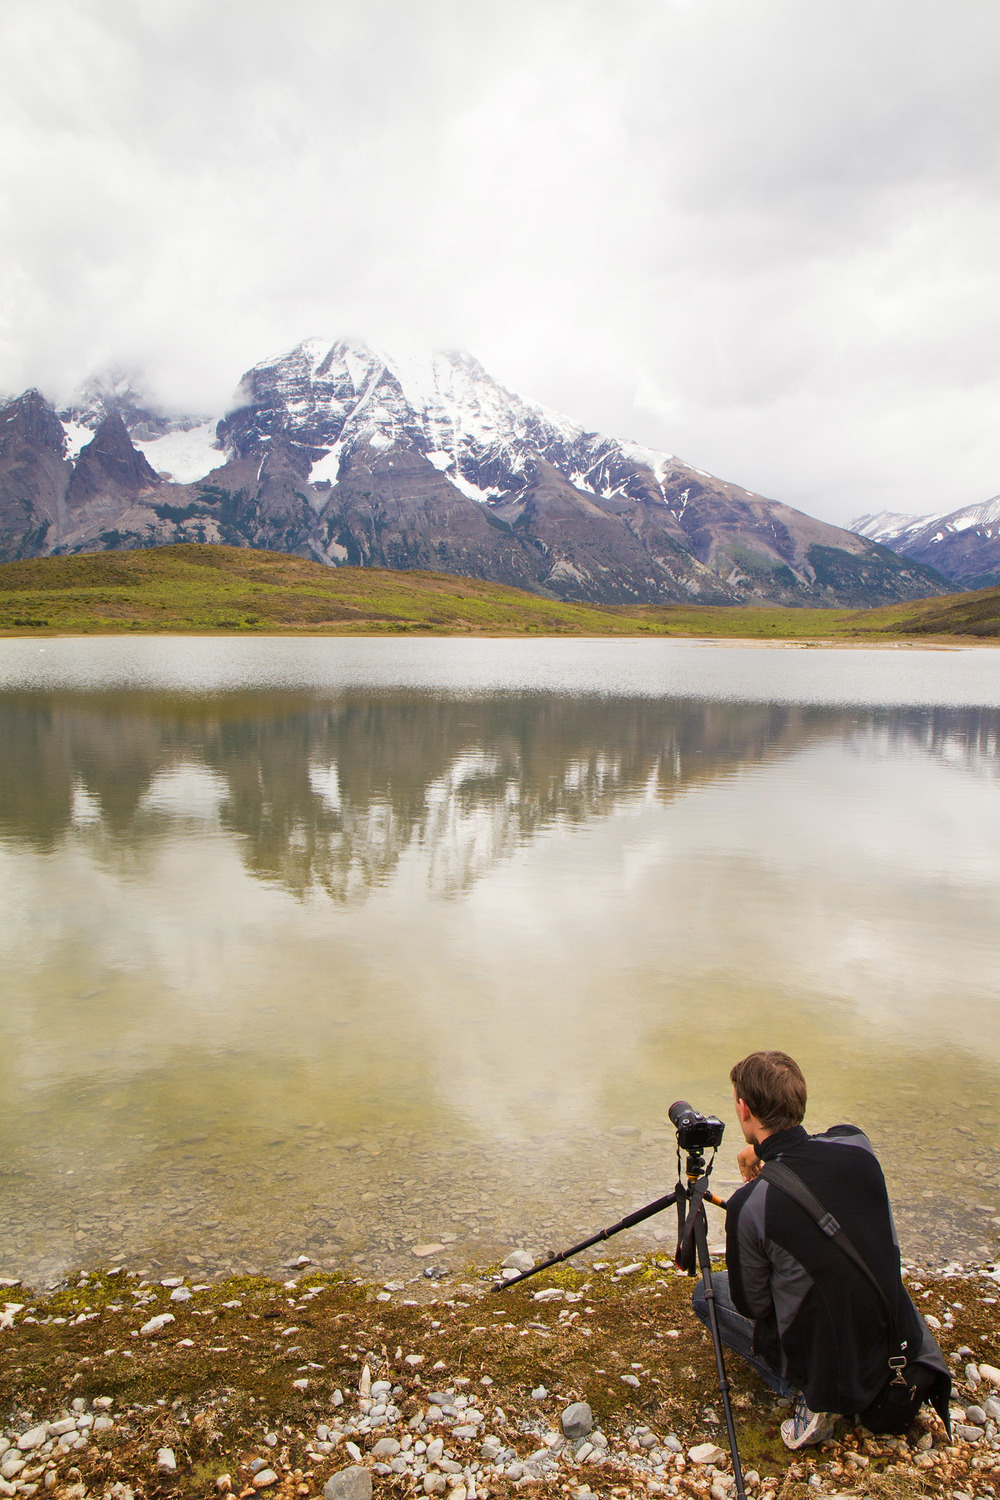 Wedding-Travellers-Overlanding-Destination-Wedding-Chile-Torres-del-Paine-laguna-lake-azul-backstage-photographer-taking-picture-outside-nature